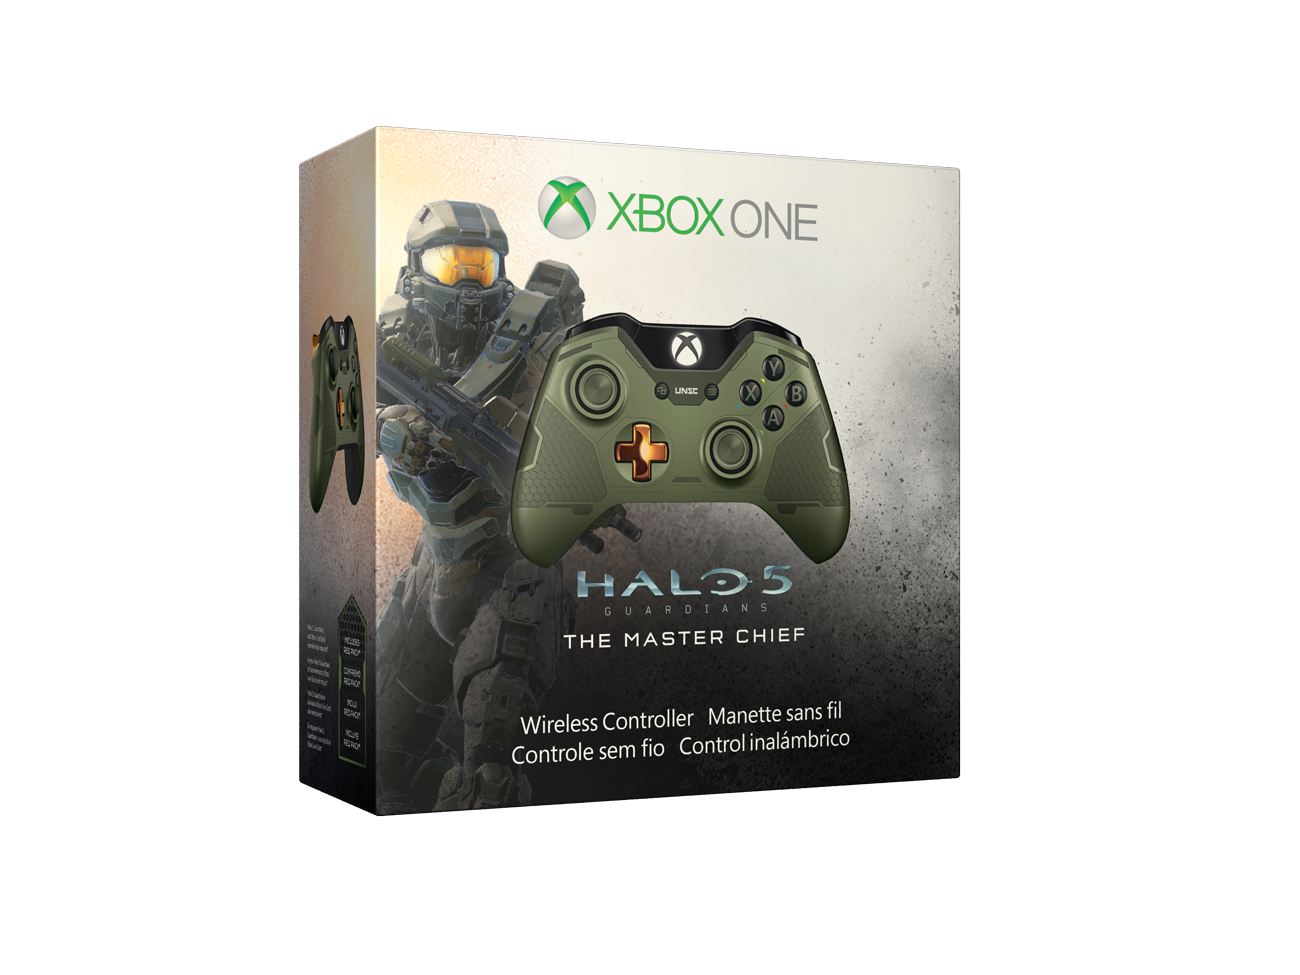 Xbox-One-Limited-Edition-Halo-5-Master-Chief-Controller-Right-Box-Shot-png